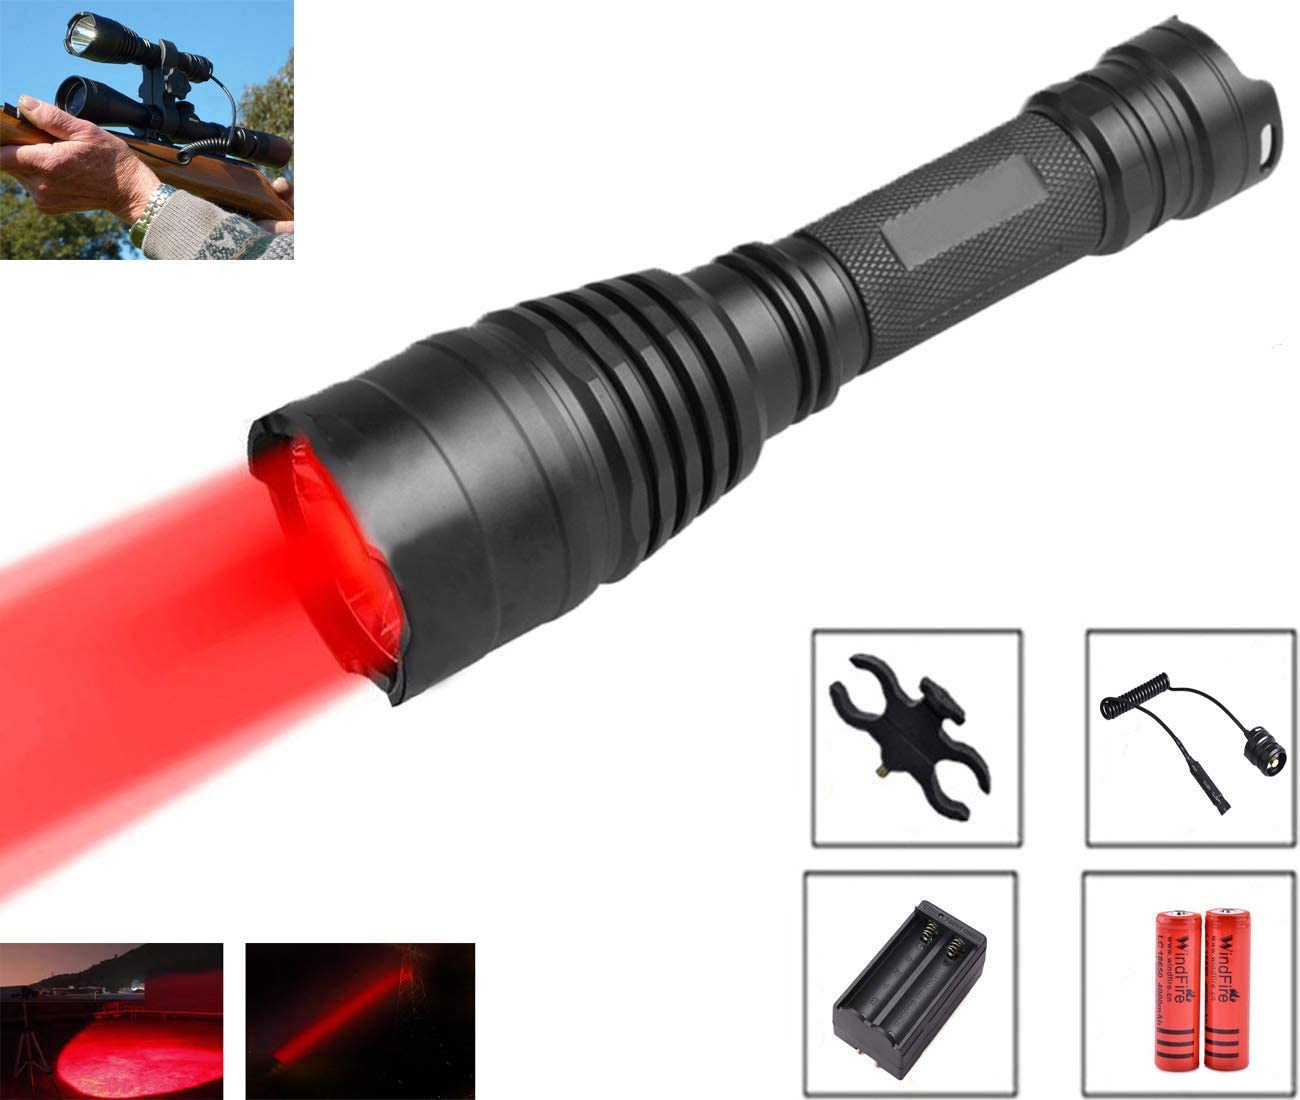 Red Light Best Hog Lights Red LED Flashlight Predator Light 420 Yards Long Range Super Bright Waterproof Red Hunting Light with Pressure Switch, Scope Mount, Spare Rechargeable Battery, Charger